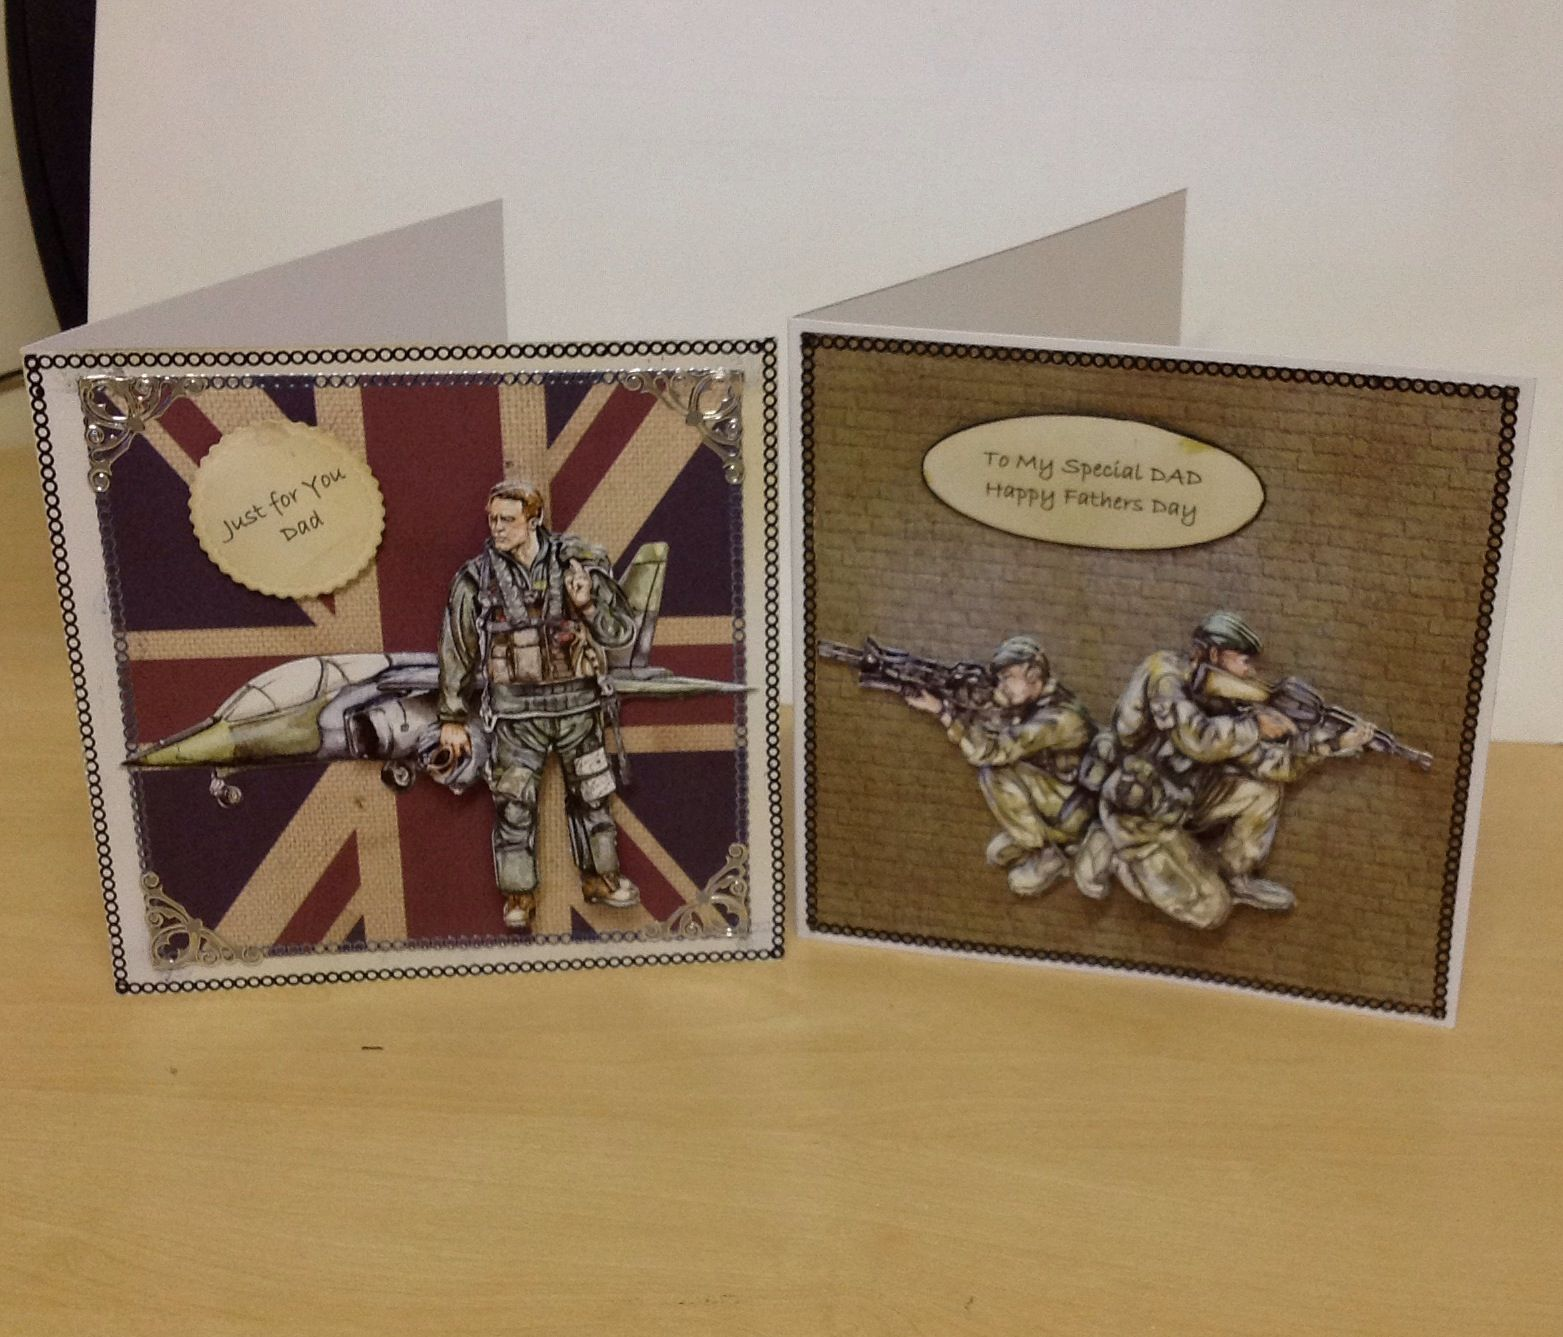 Two more men's cards....ready for Fathers Day